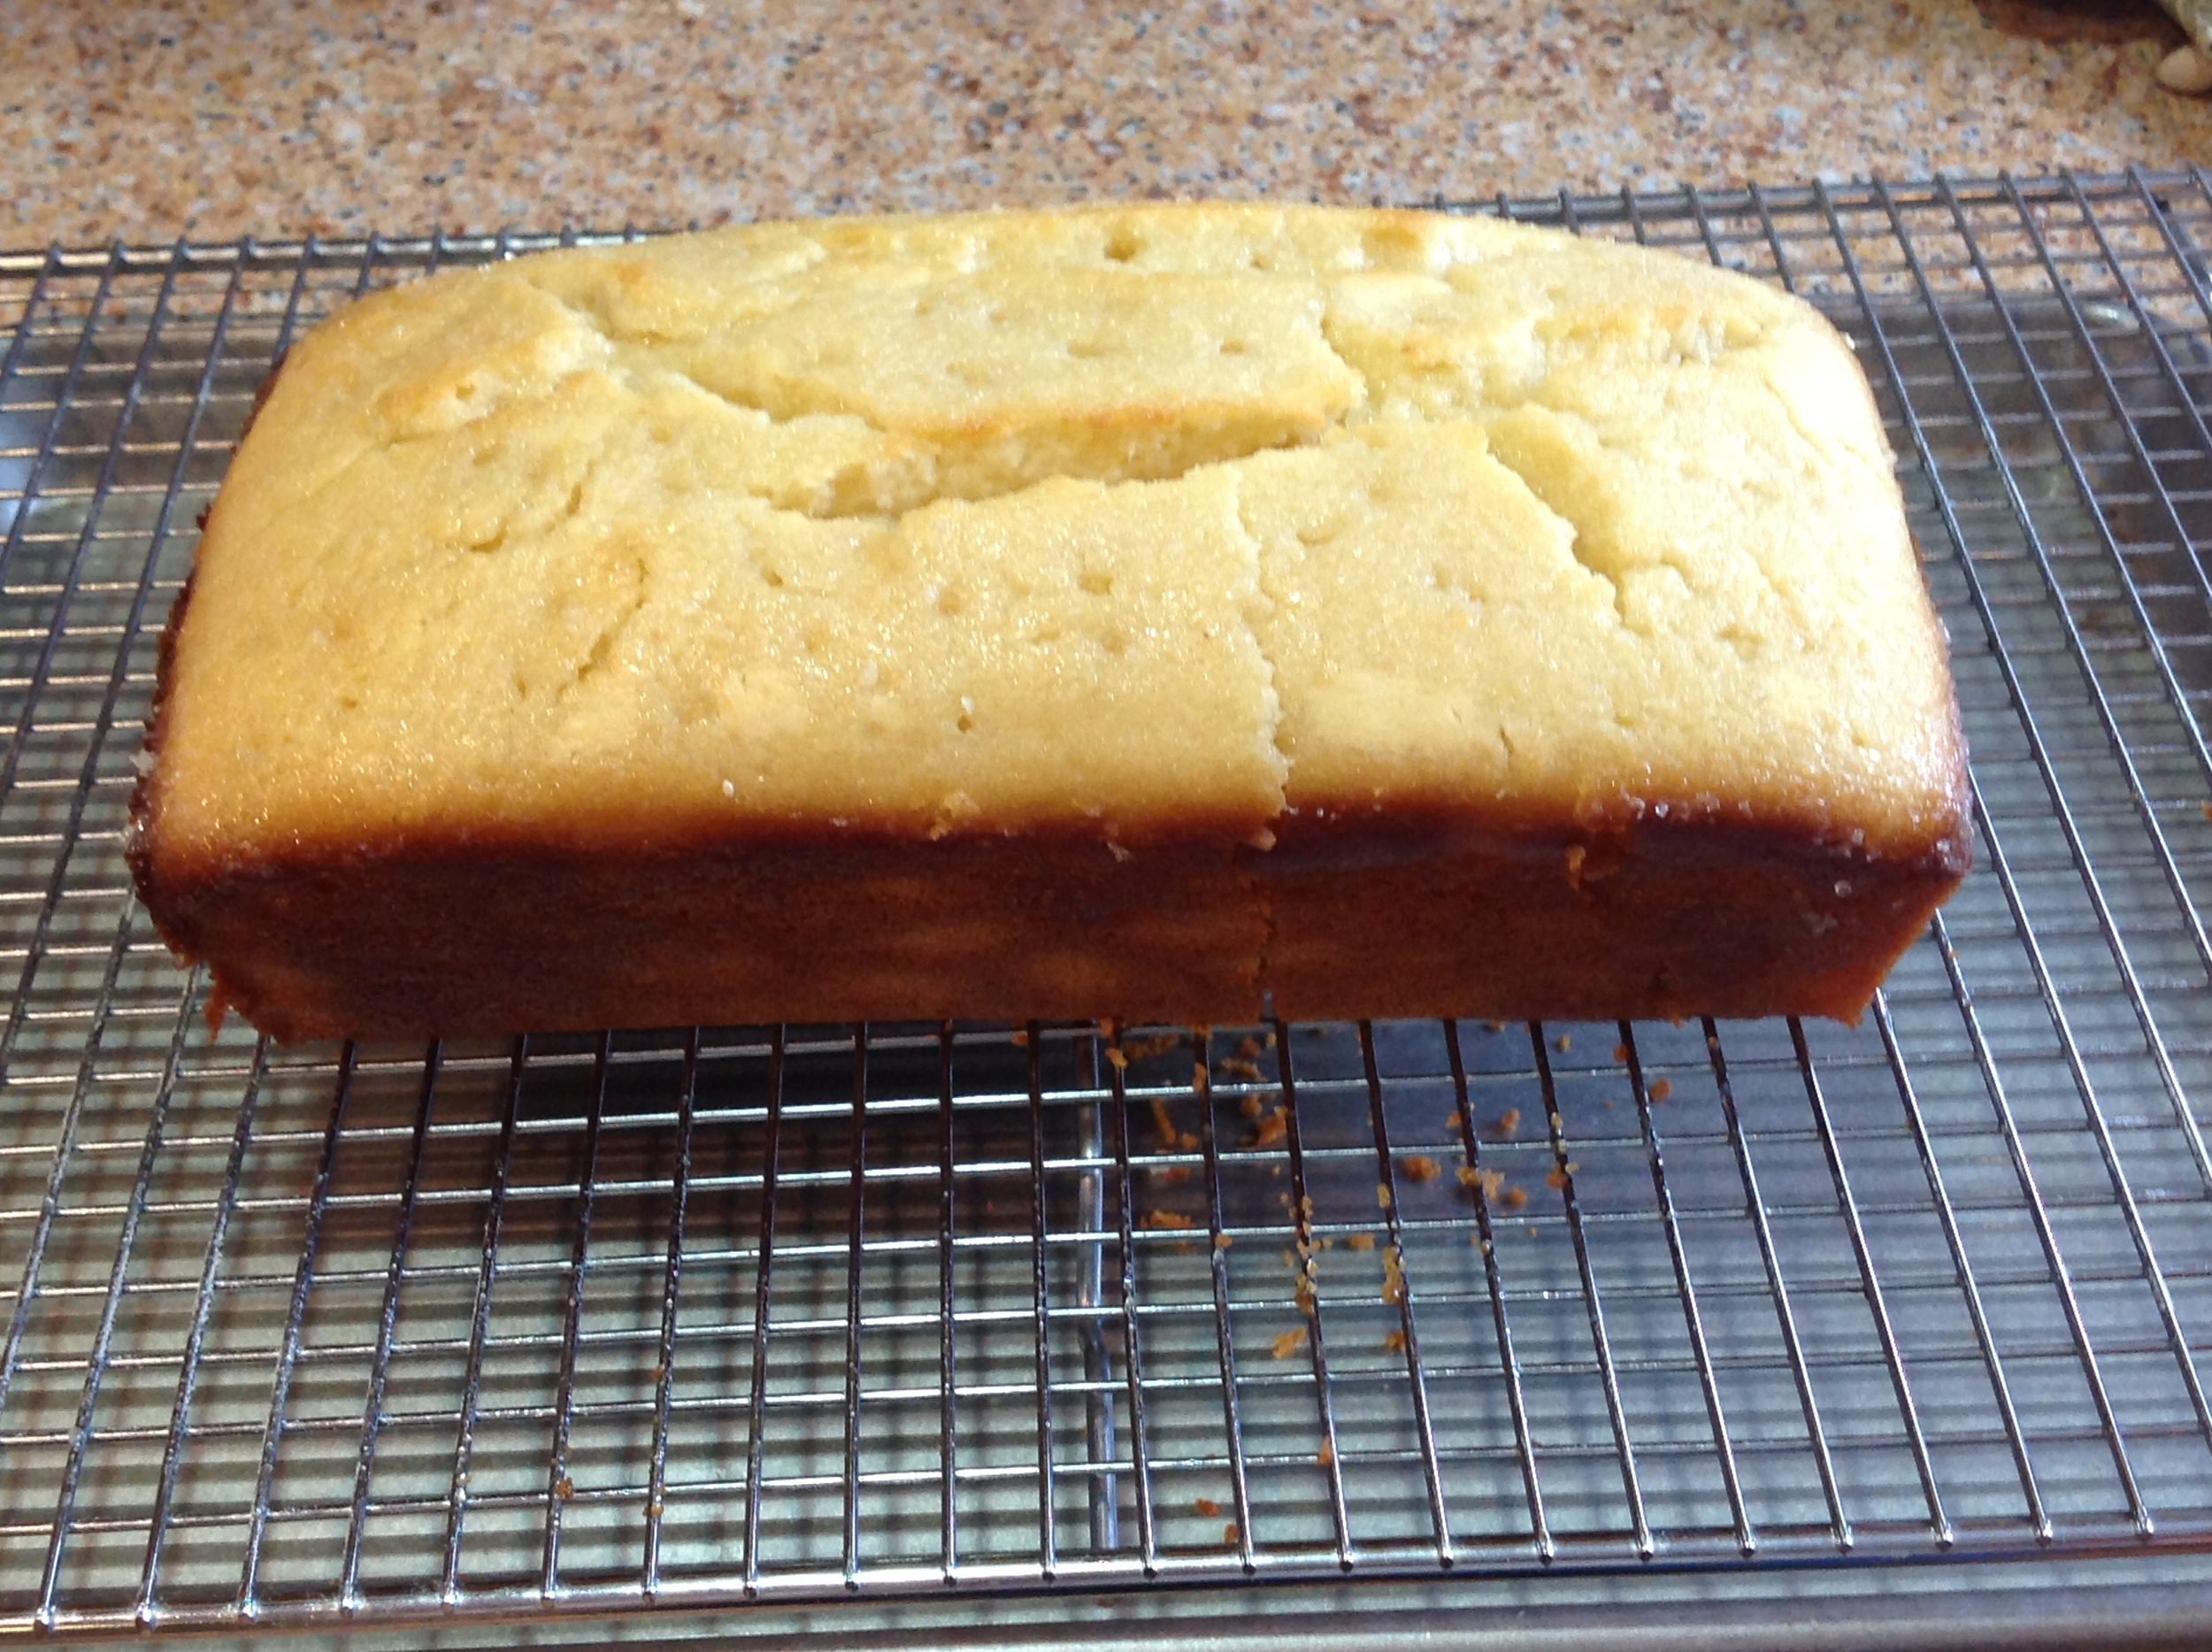 Lemon bread glazed and cooling before slicing.